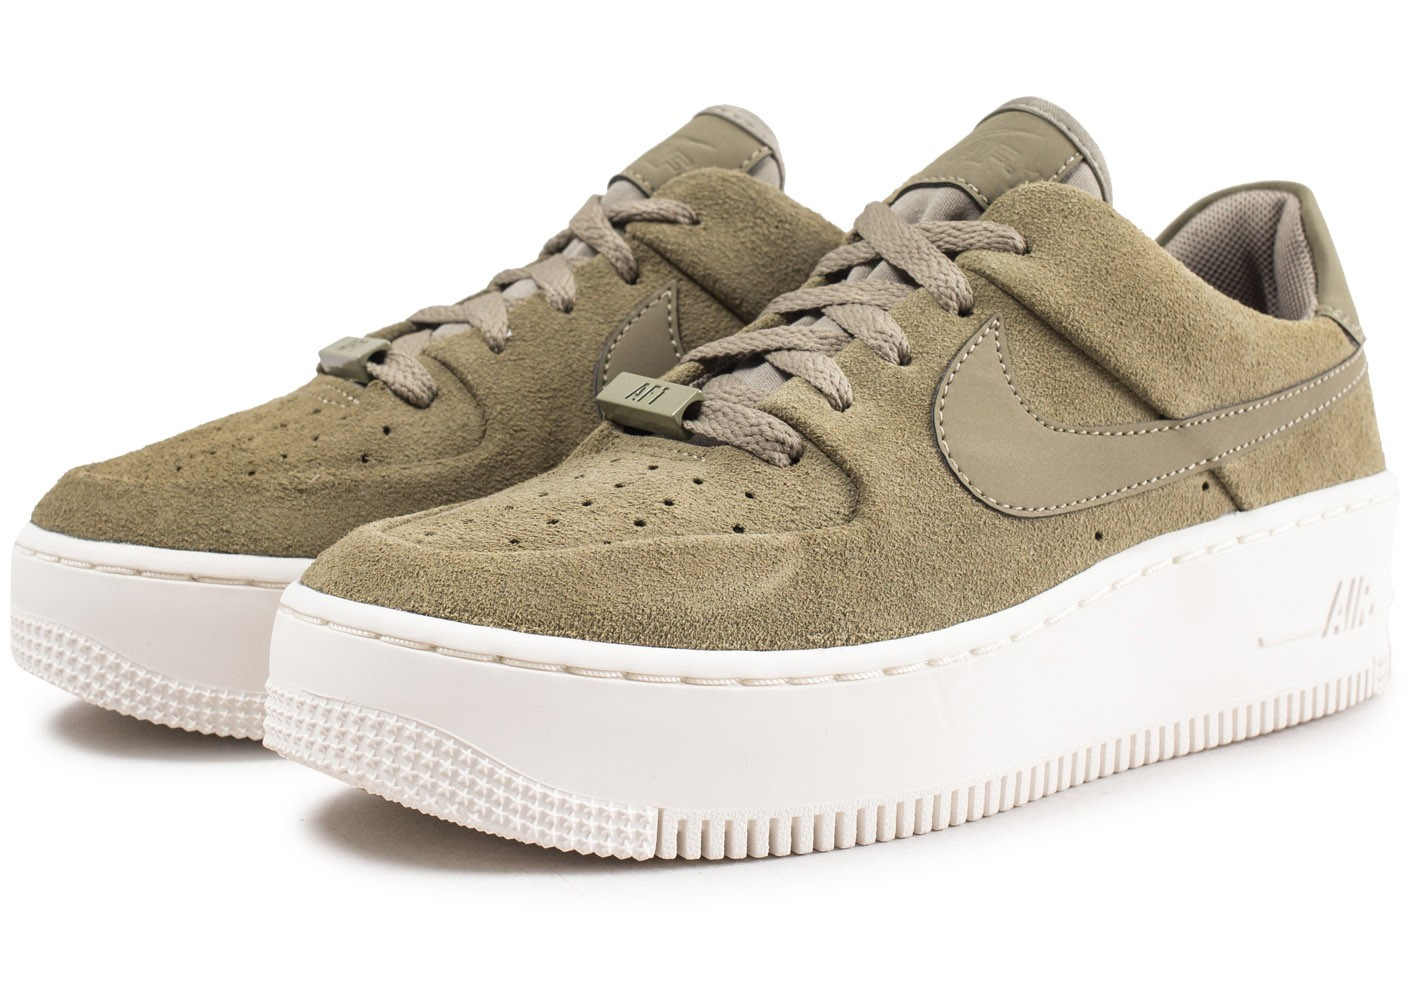 Nike Air Force 1 Sage Low Kaki femme - Chaussures Baskets ...